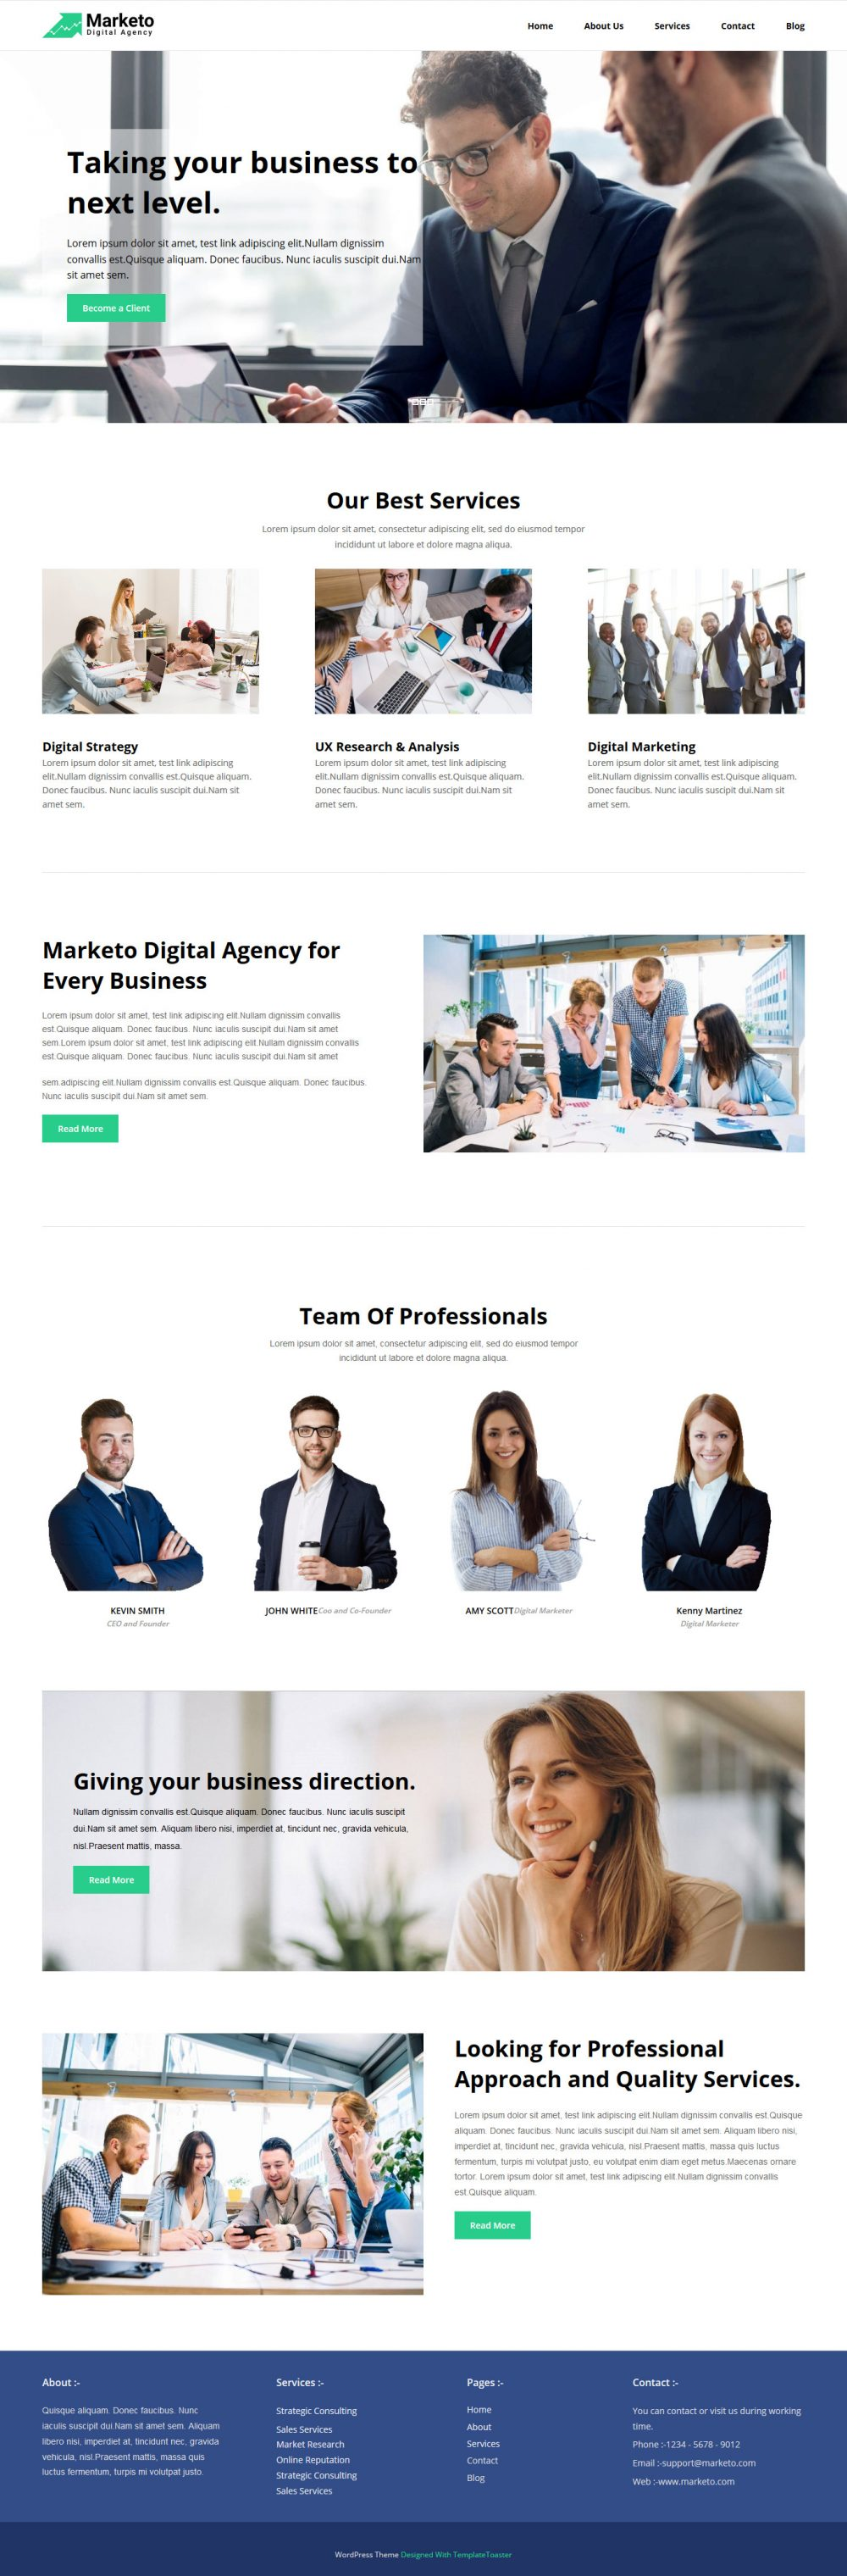 Marketo Marketing Consultancy Services Blogger Template